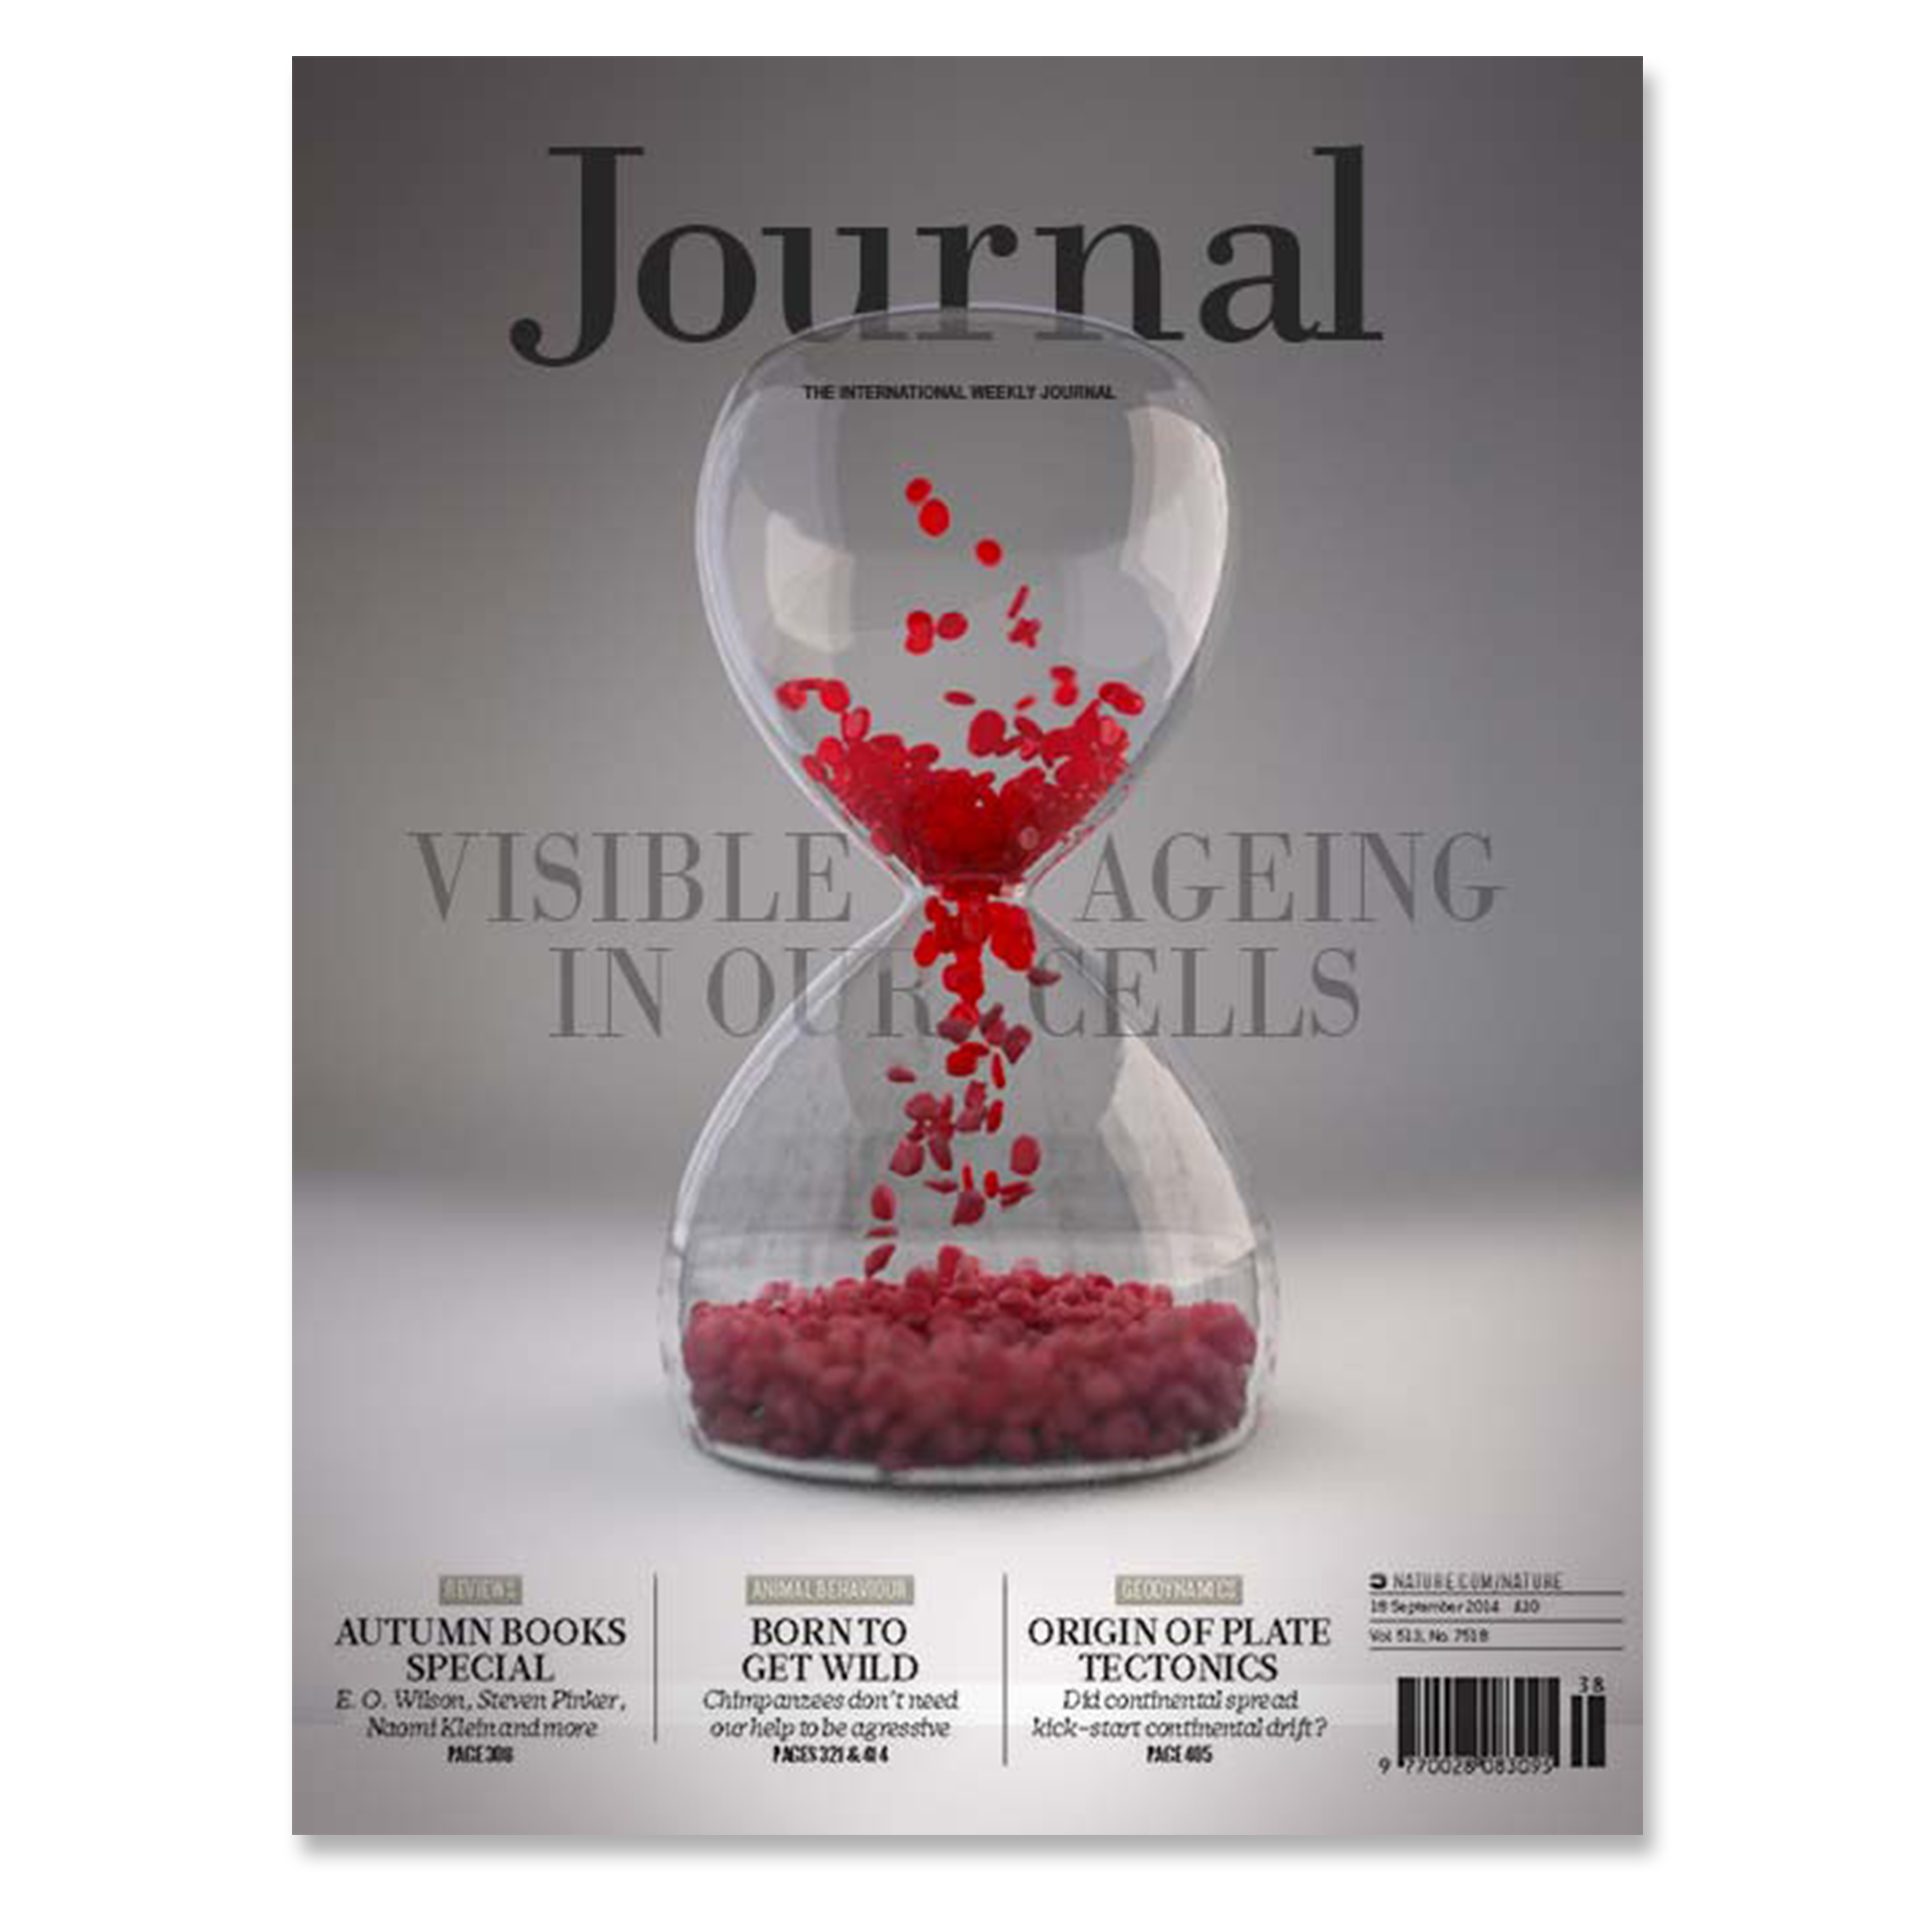 Journal-image-02.png